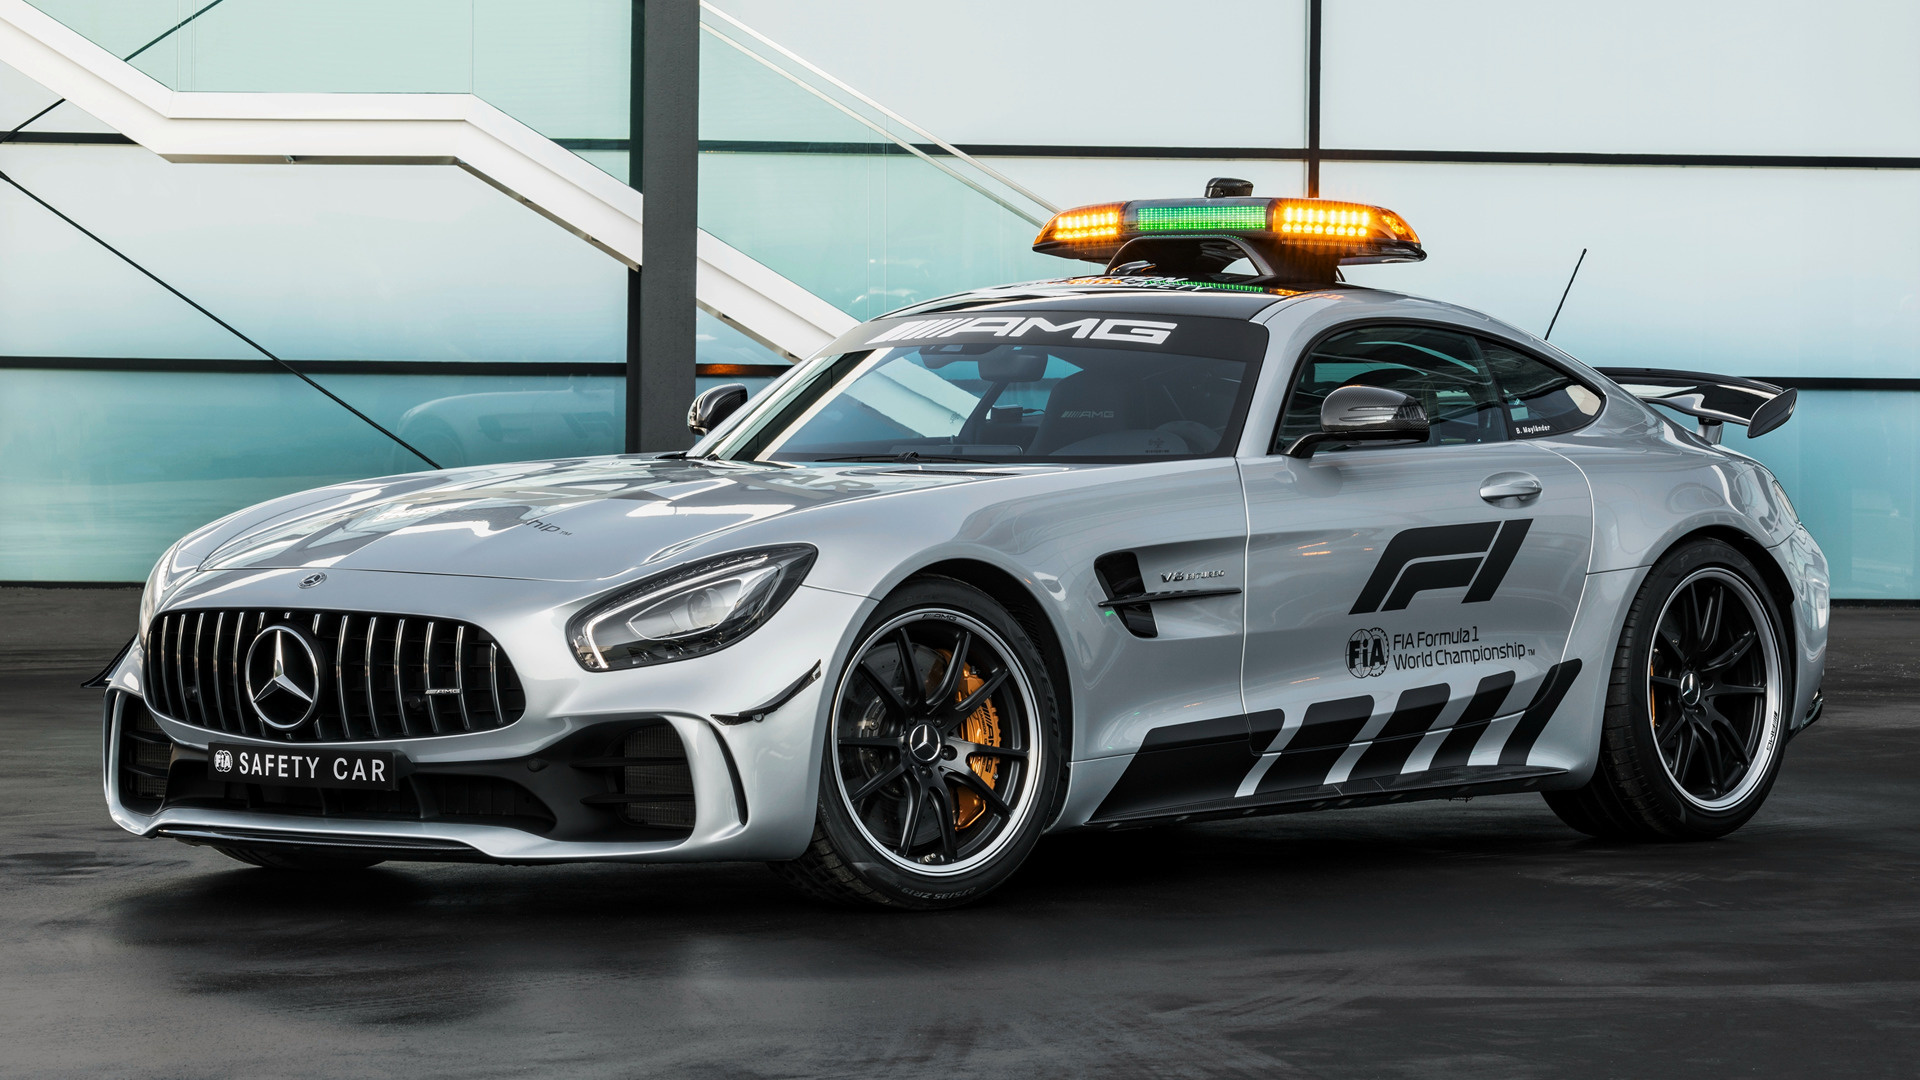 mercedes amg gt r f1 safety car 2018 wallpapers and hd images car pixel. Black Bedroom Furniture Sets. Home Design Ideas